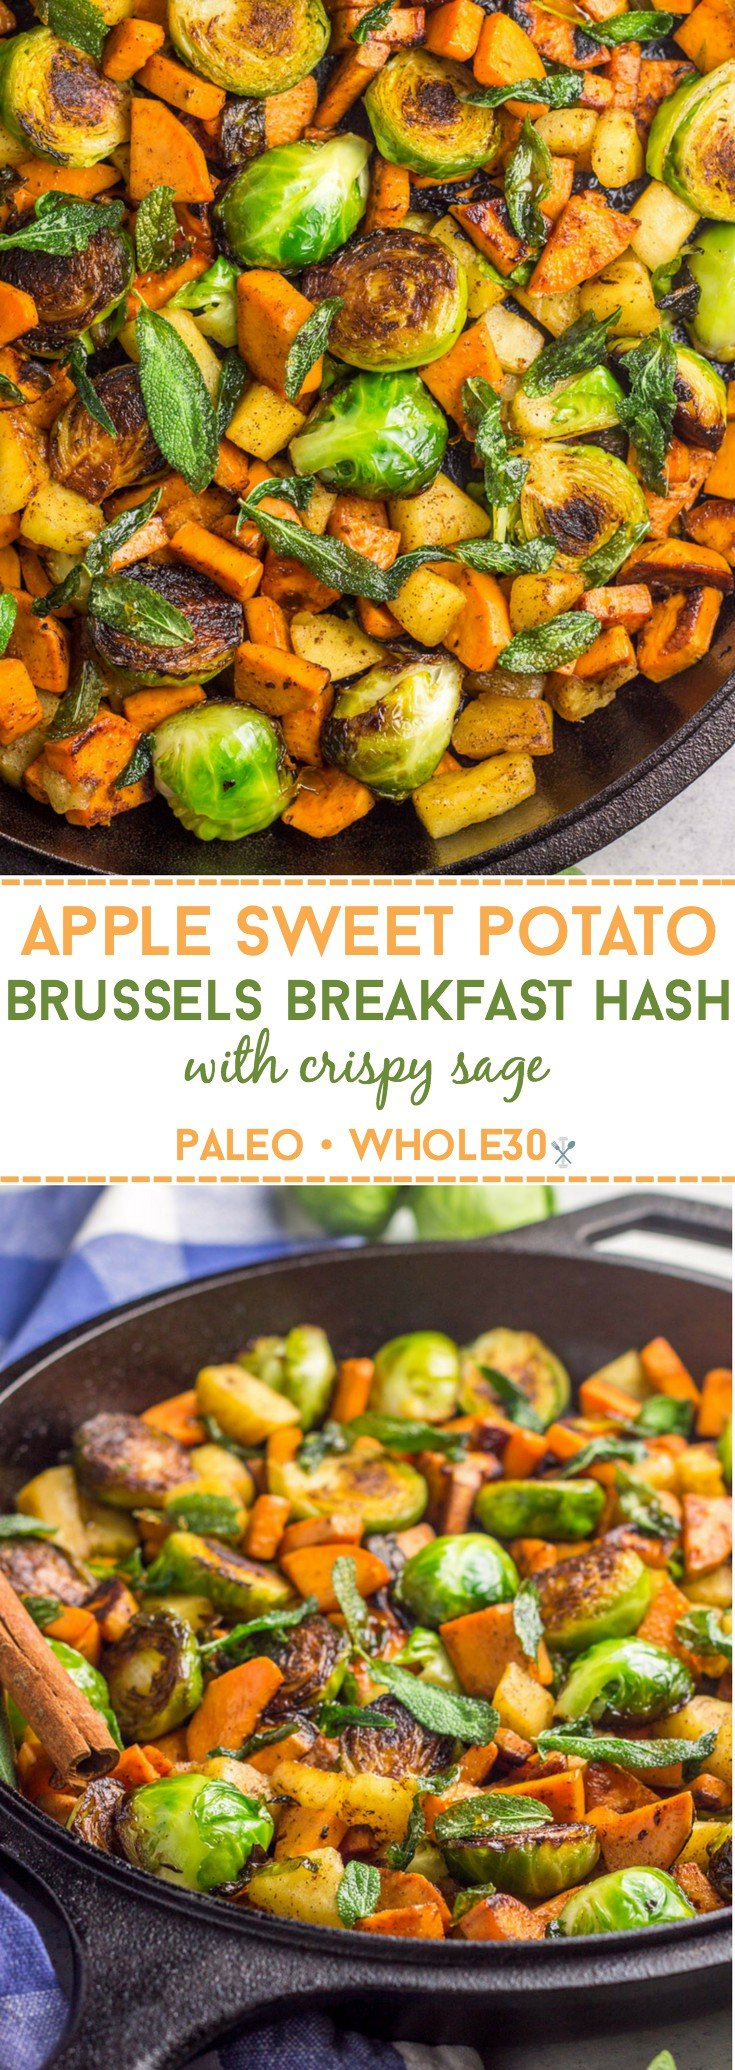 This paleo, Whole30 and vegan Apple Sweet Potato Brussels Breakfast Hash is the perfect healthy and hearty eggless skillet meal.